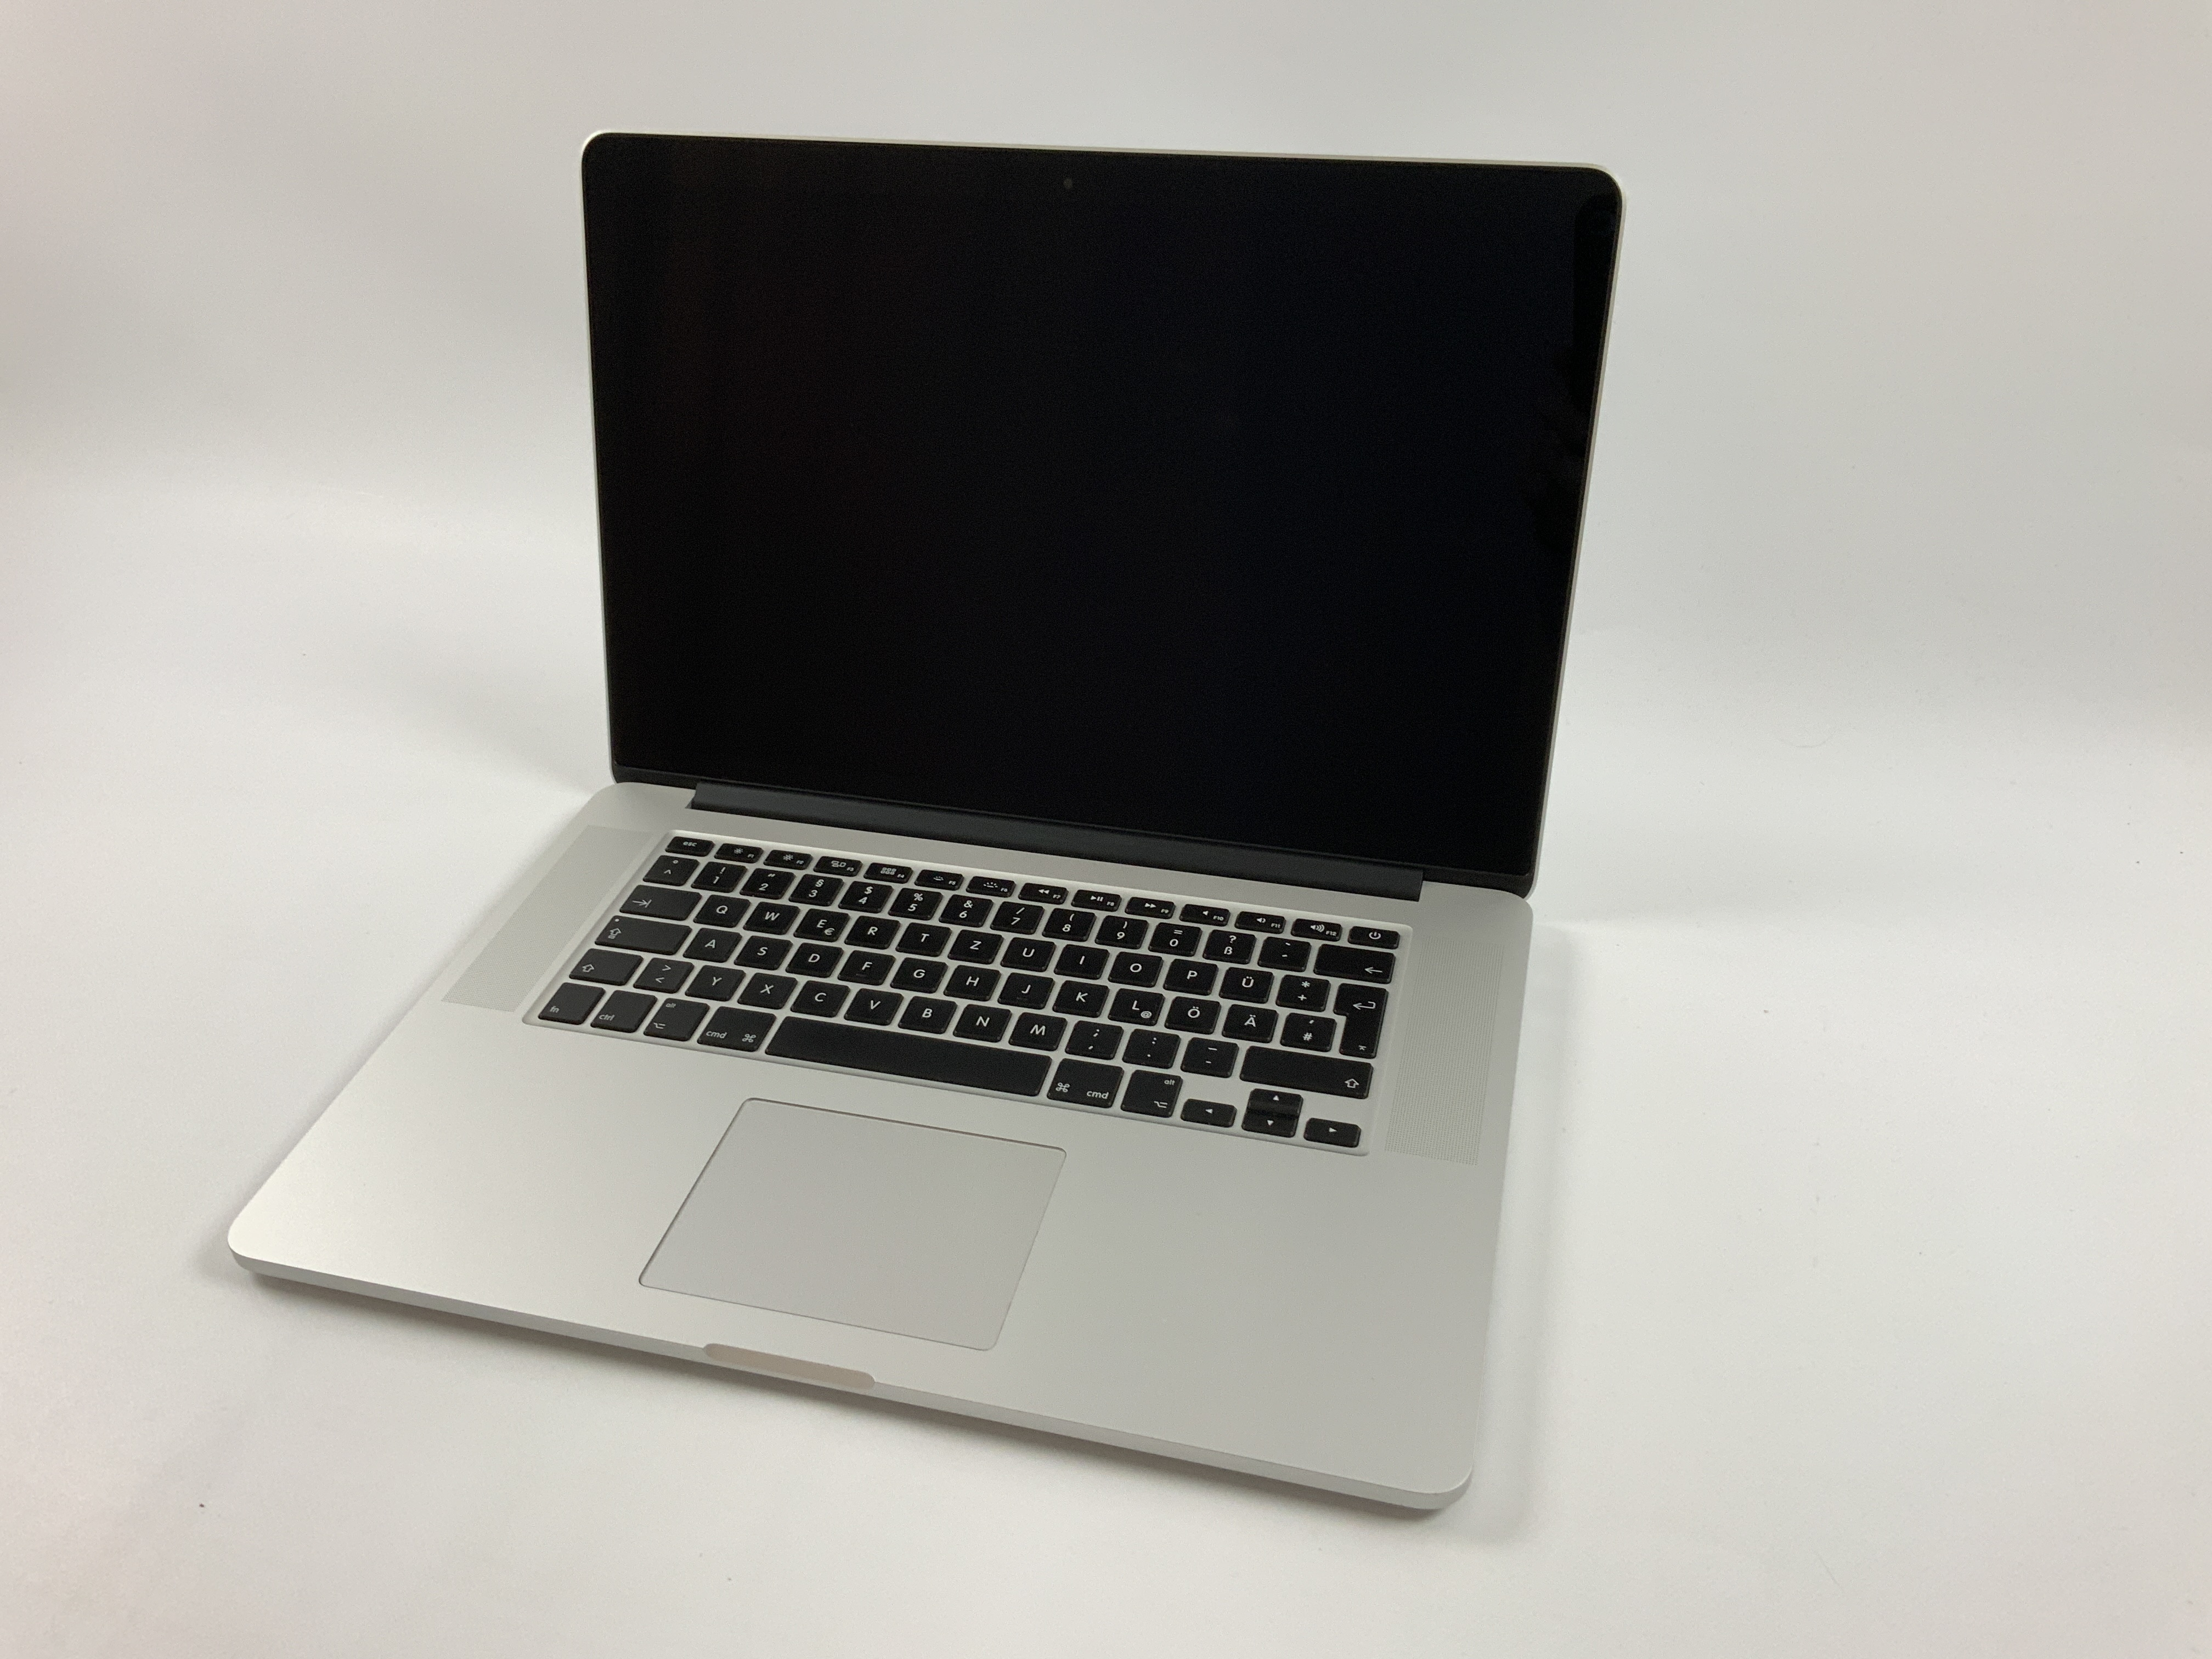 "MacBook Pro Retina 15"" Mid 2015 (Intel Quad-Core i7 2.2 GHz 16 GB RAM 1 TB SSD), Intel Quad-Core i7 2.2 GHz, 16 GB RAM, 1 TB SSD, Kuva 1"